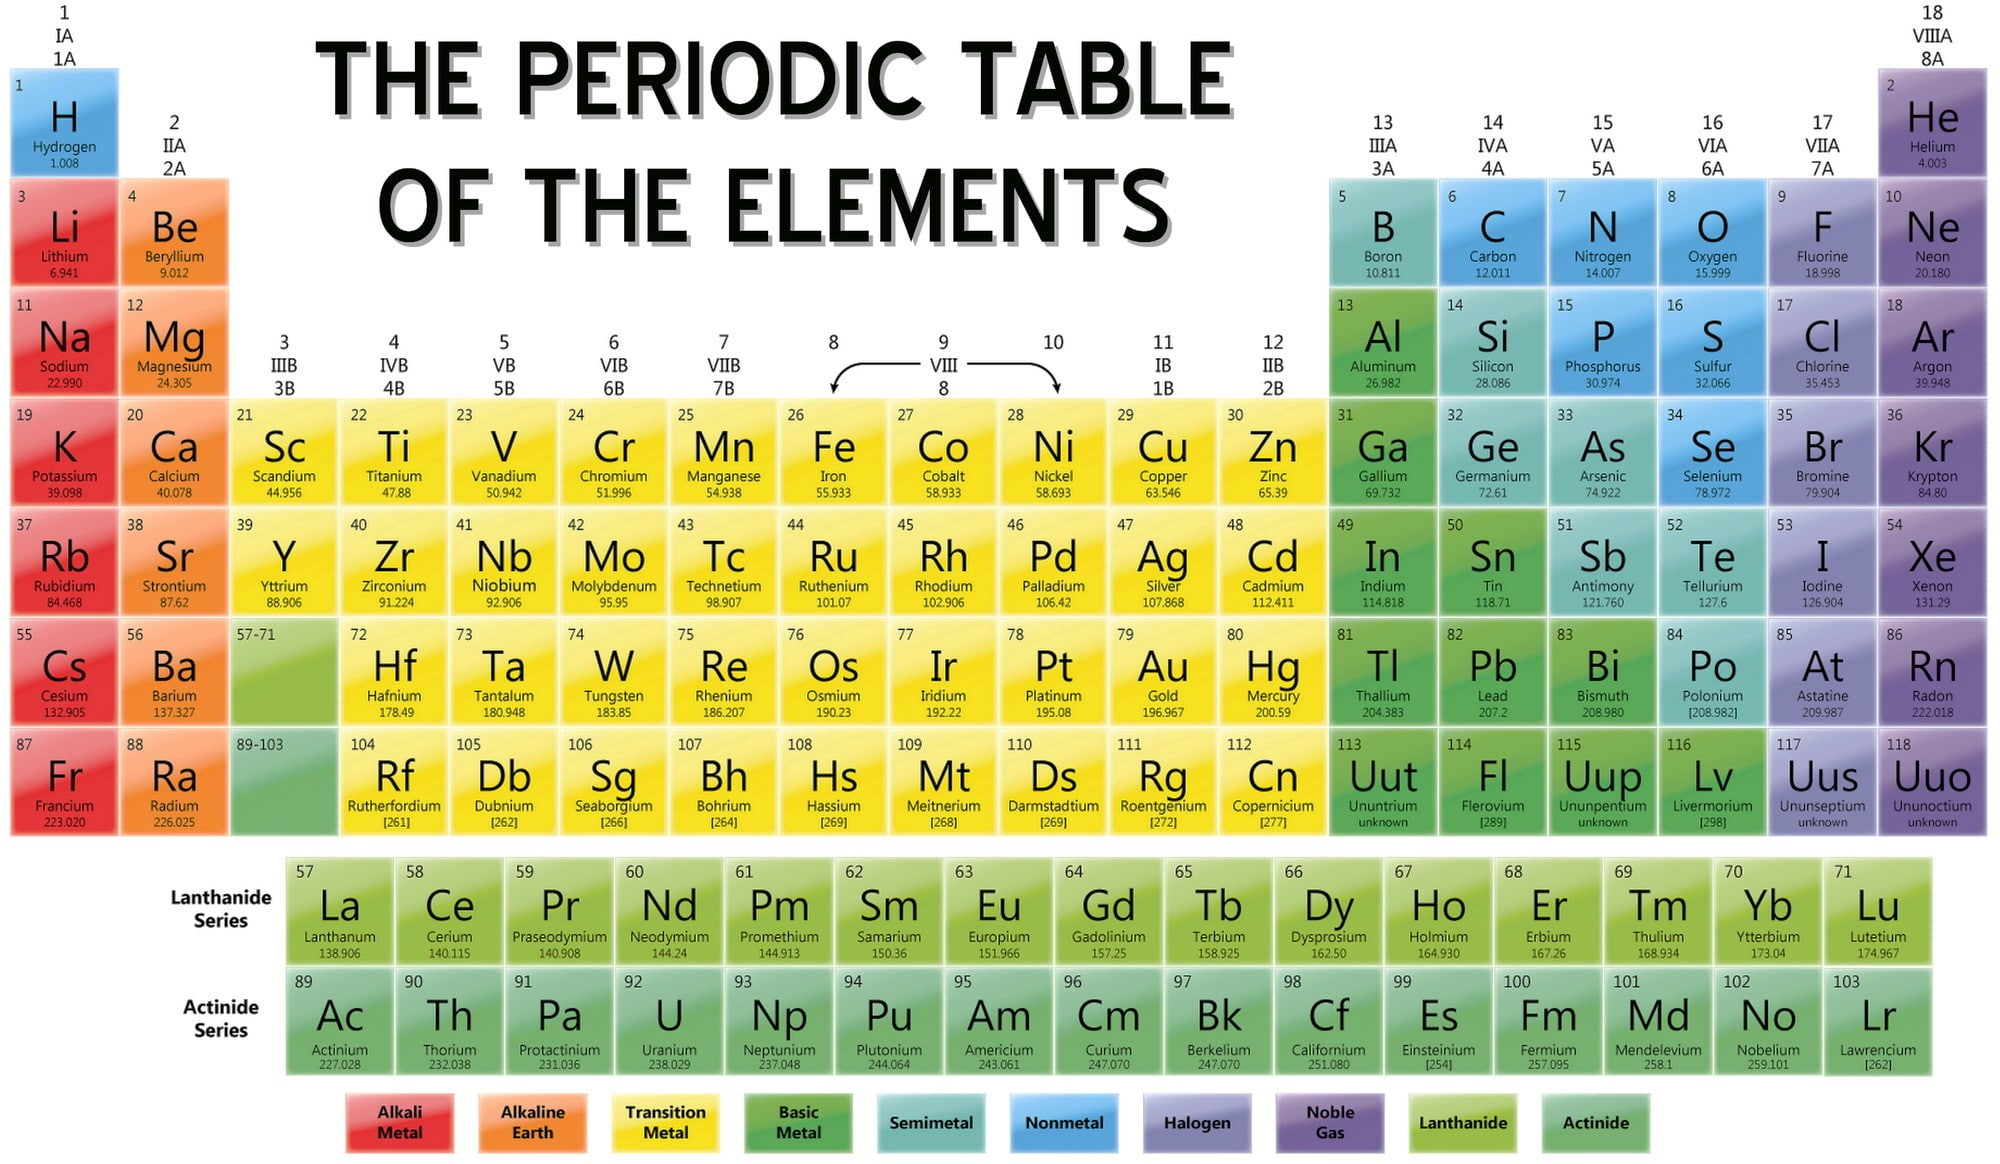 the periodic table of the elements list - Periodic Table Of Elements Years